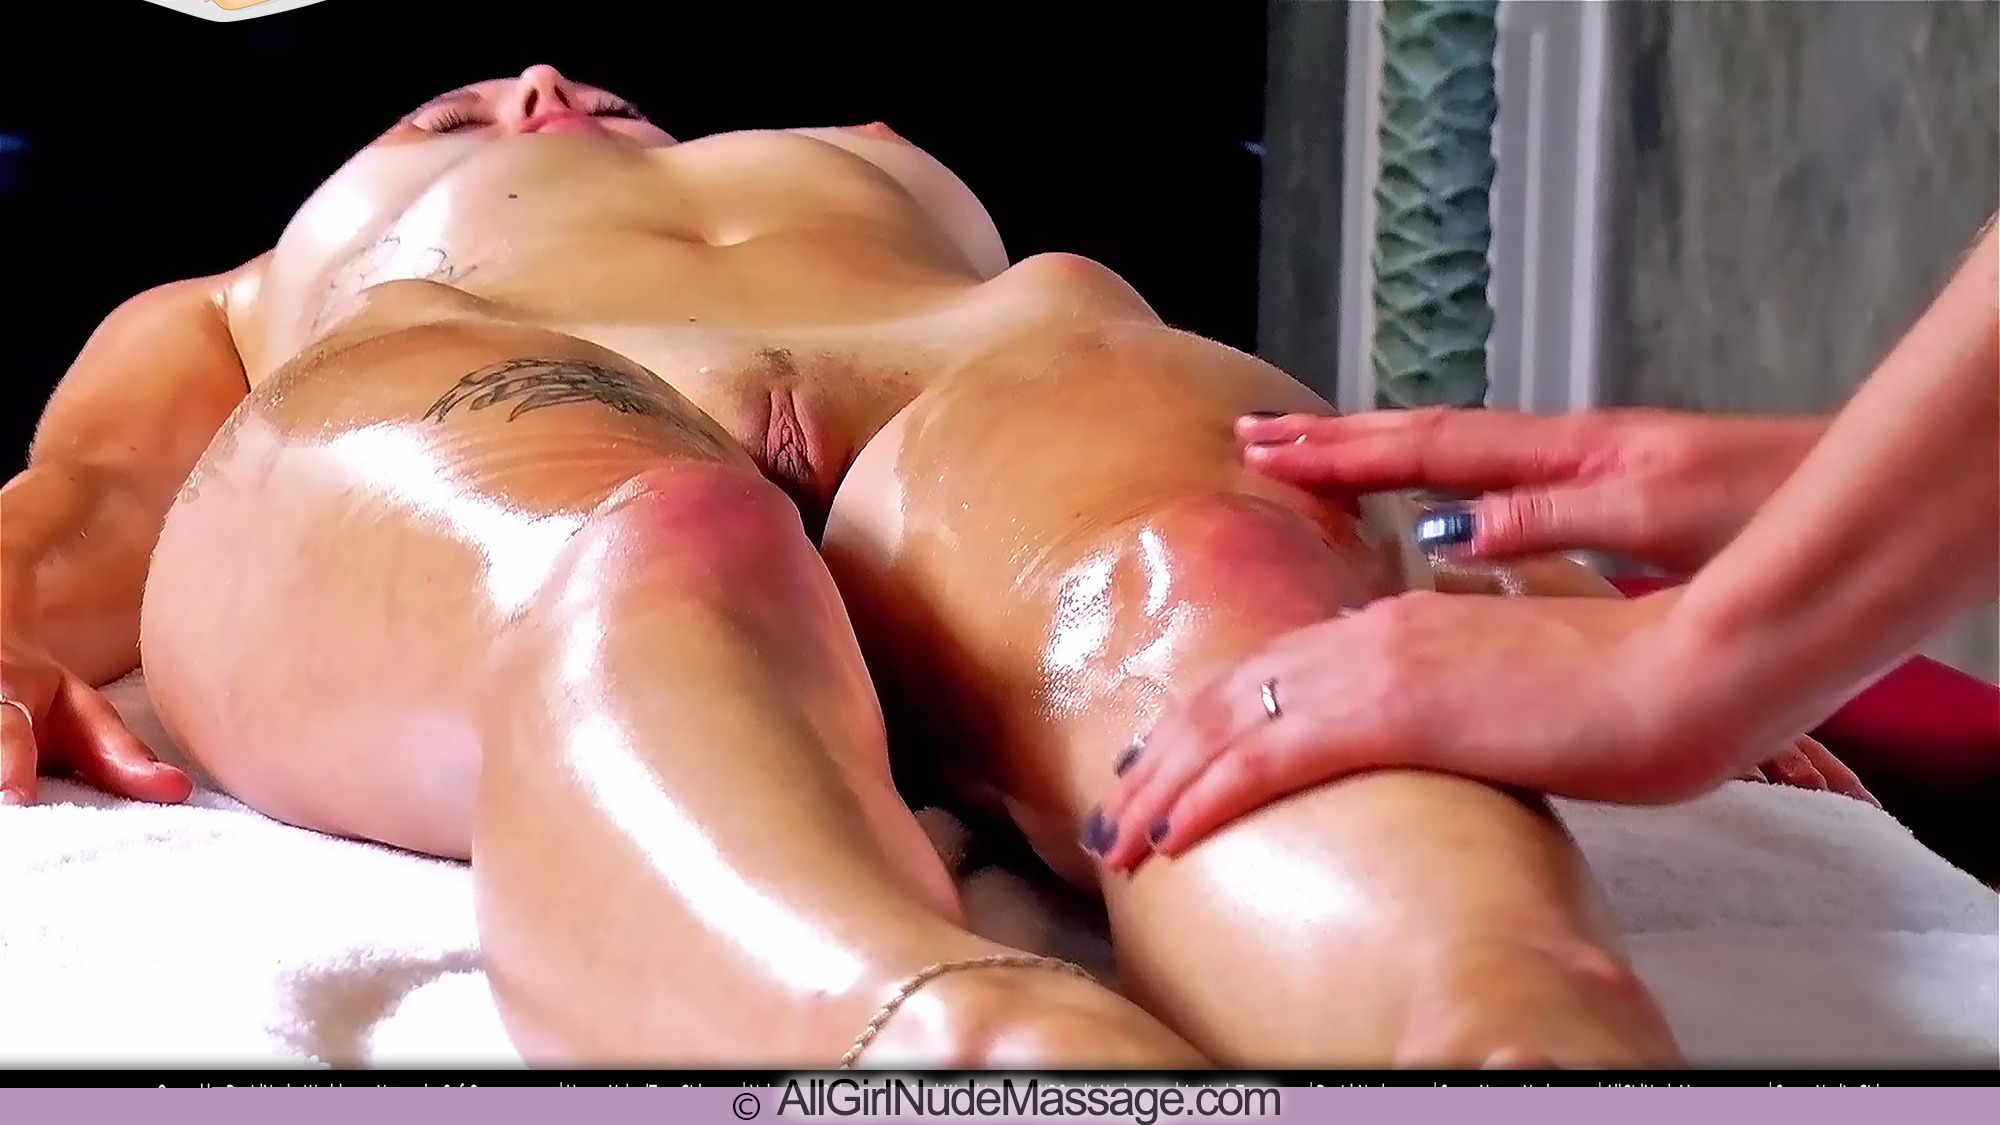 All nude girl breast massage by nude — photo 4